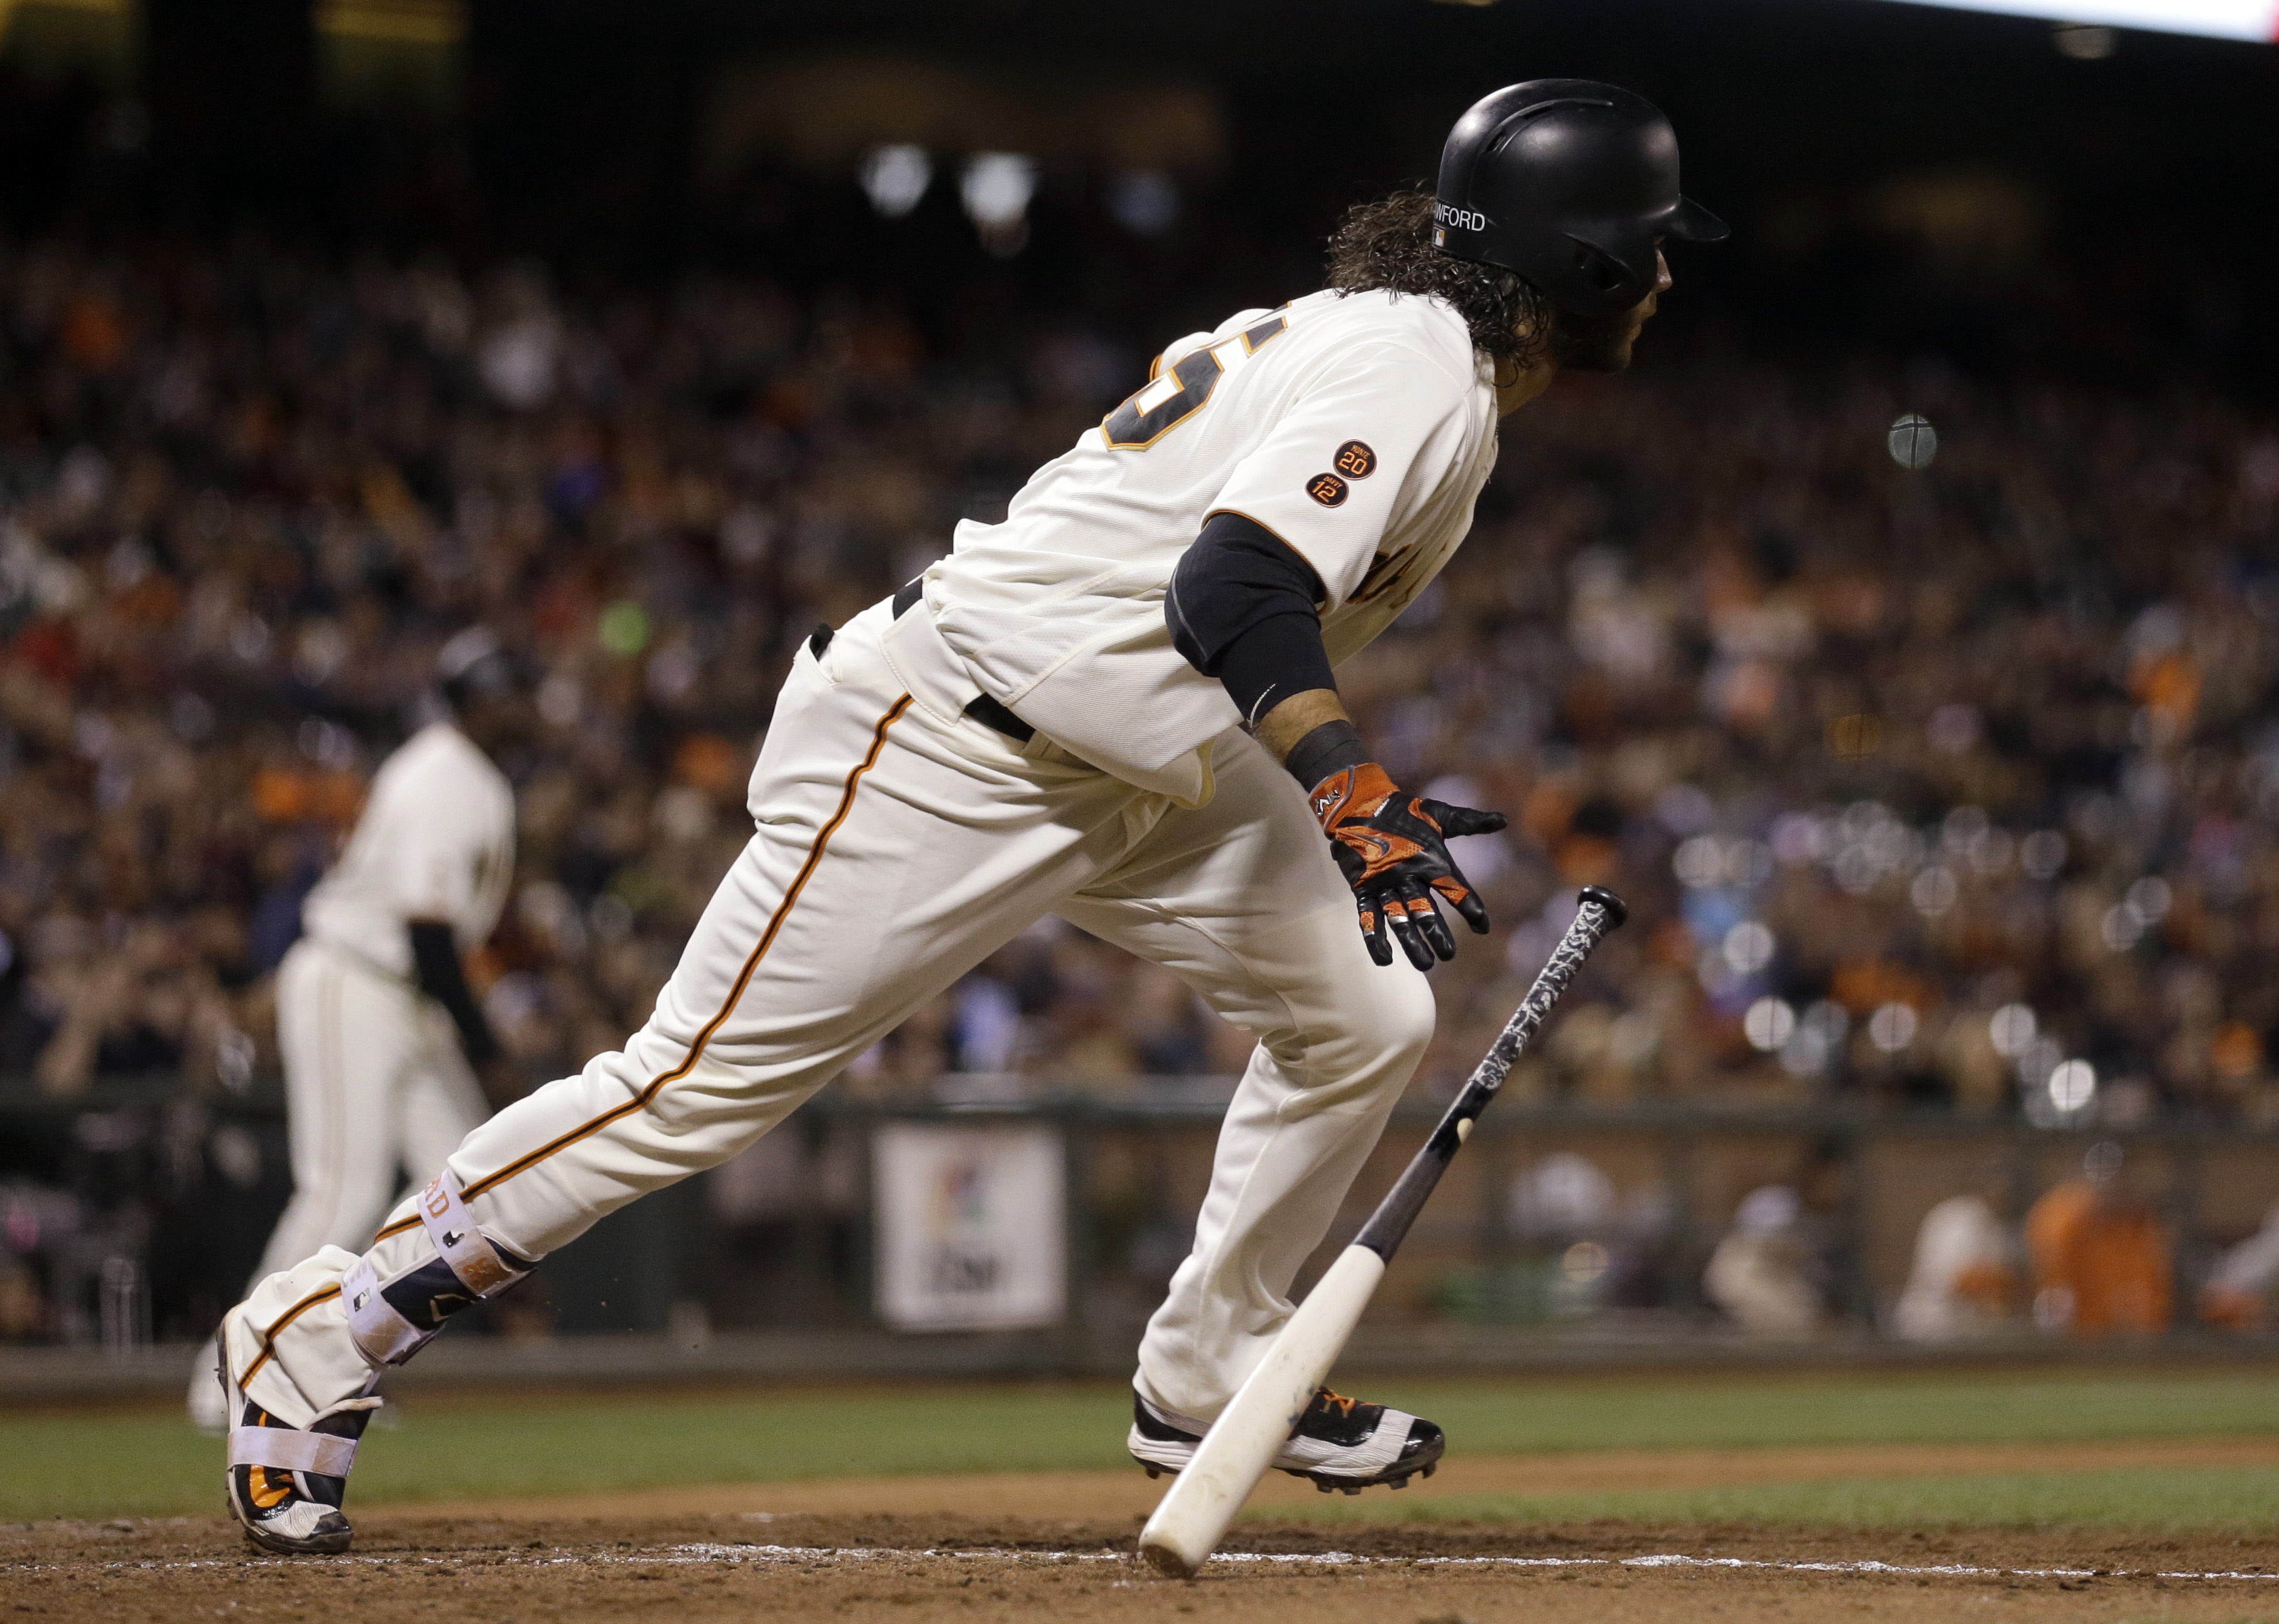 San Francisco Giants' Brandon Crawford runs to first after hitting a two-run single off Milwaukee Brewers' Blaine Boyer during the seventh inning of a baseball game Monday, June 13, 2016, in San Francisco. (AP Photo/Ben Margot)